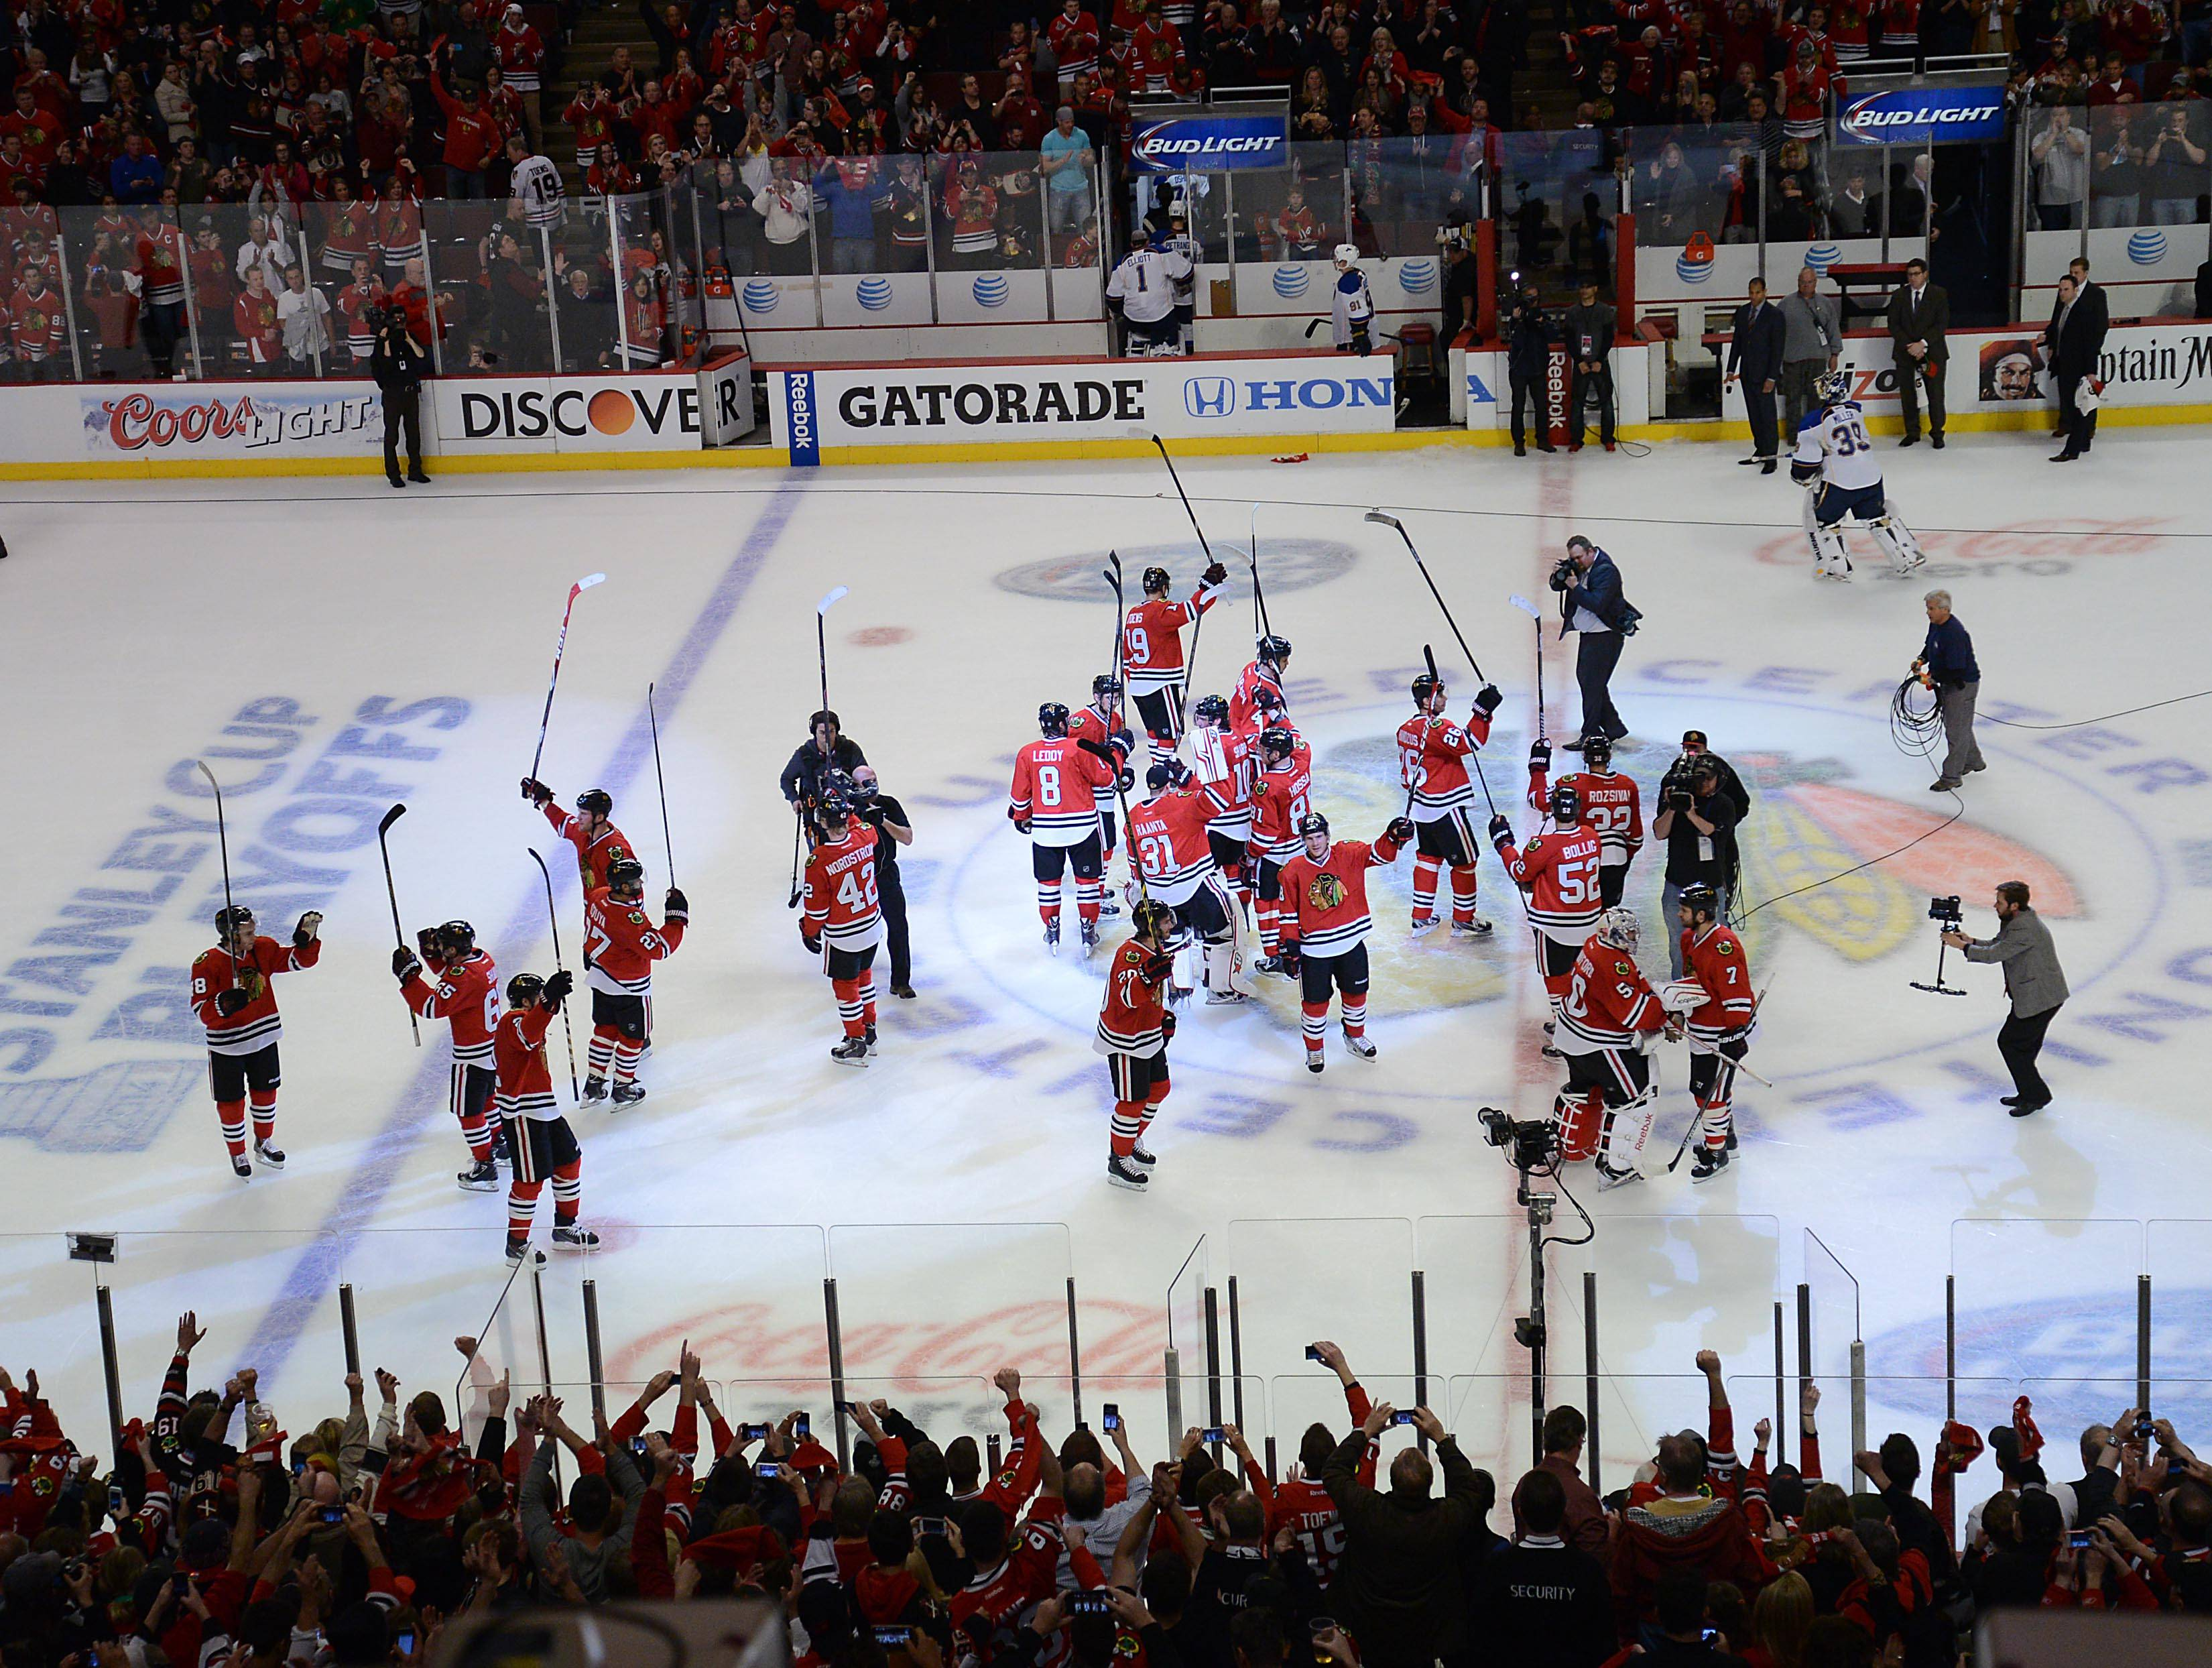 The Chicago Blackhawks raise their sticks to thank the crowd Sunday after beating the St. Louis Blues in Game 6 of the NHL first round playoffs.